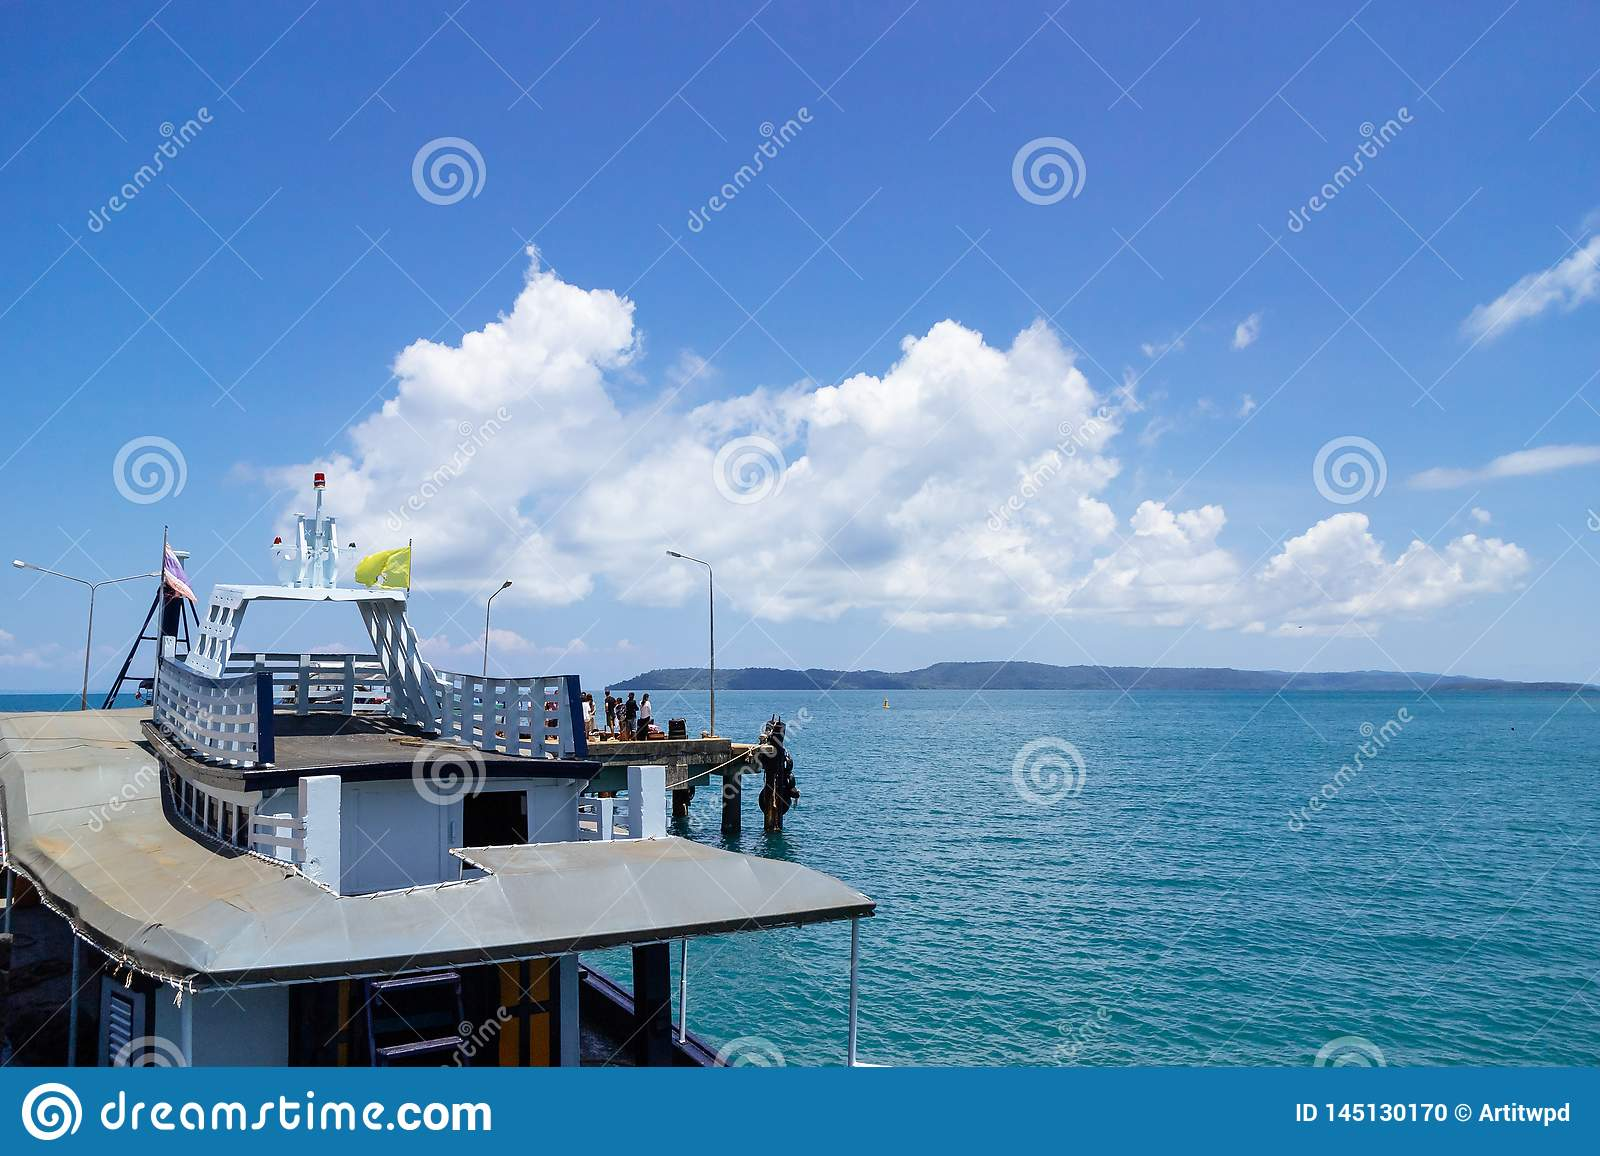 Passenger boat on the left side with big white cloud over the sea in background in summer, Koh Mak Island in Trat, Thailand